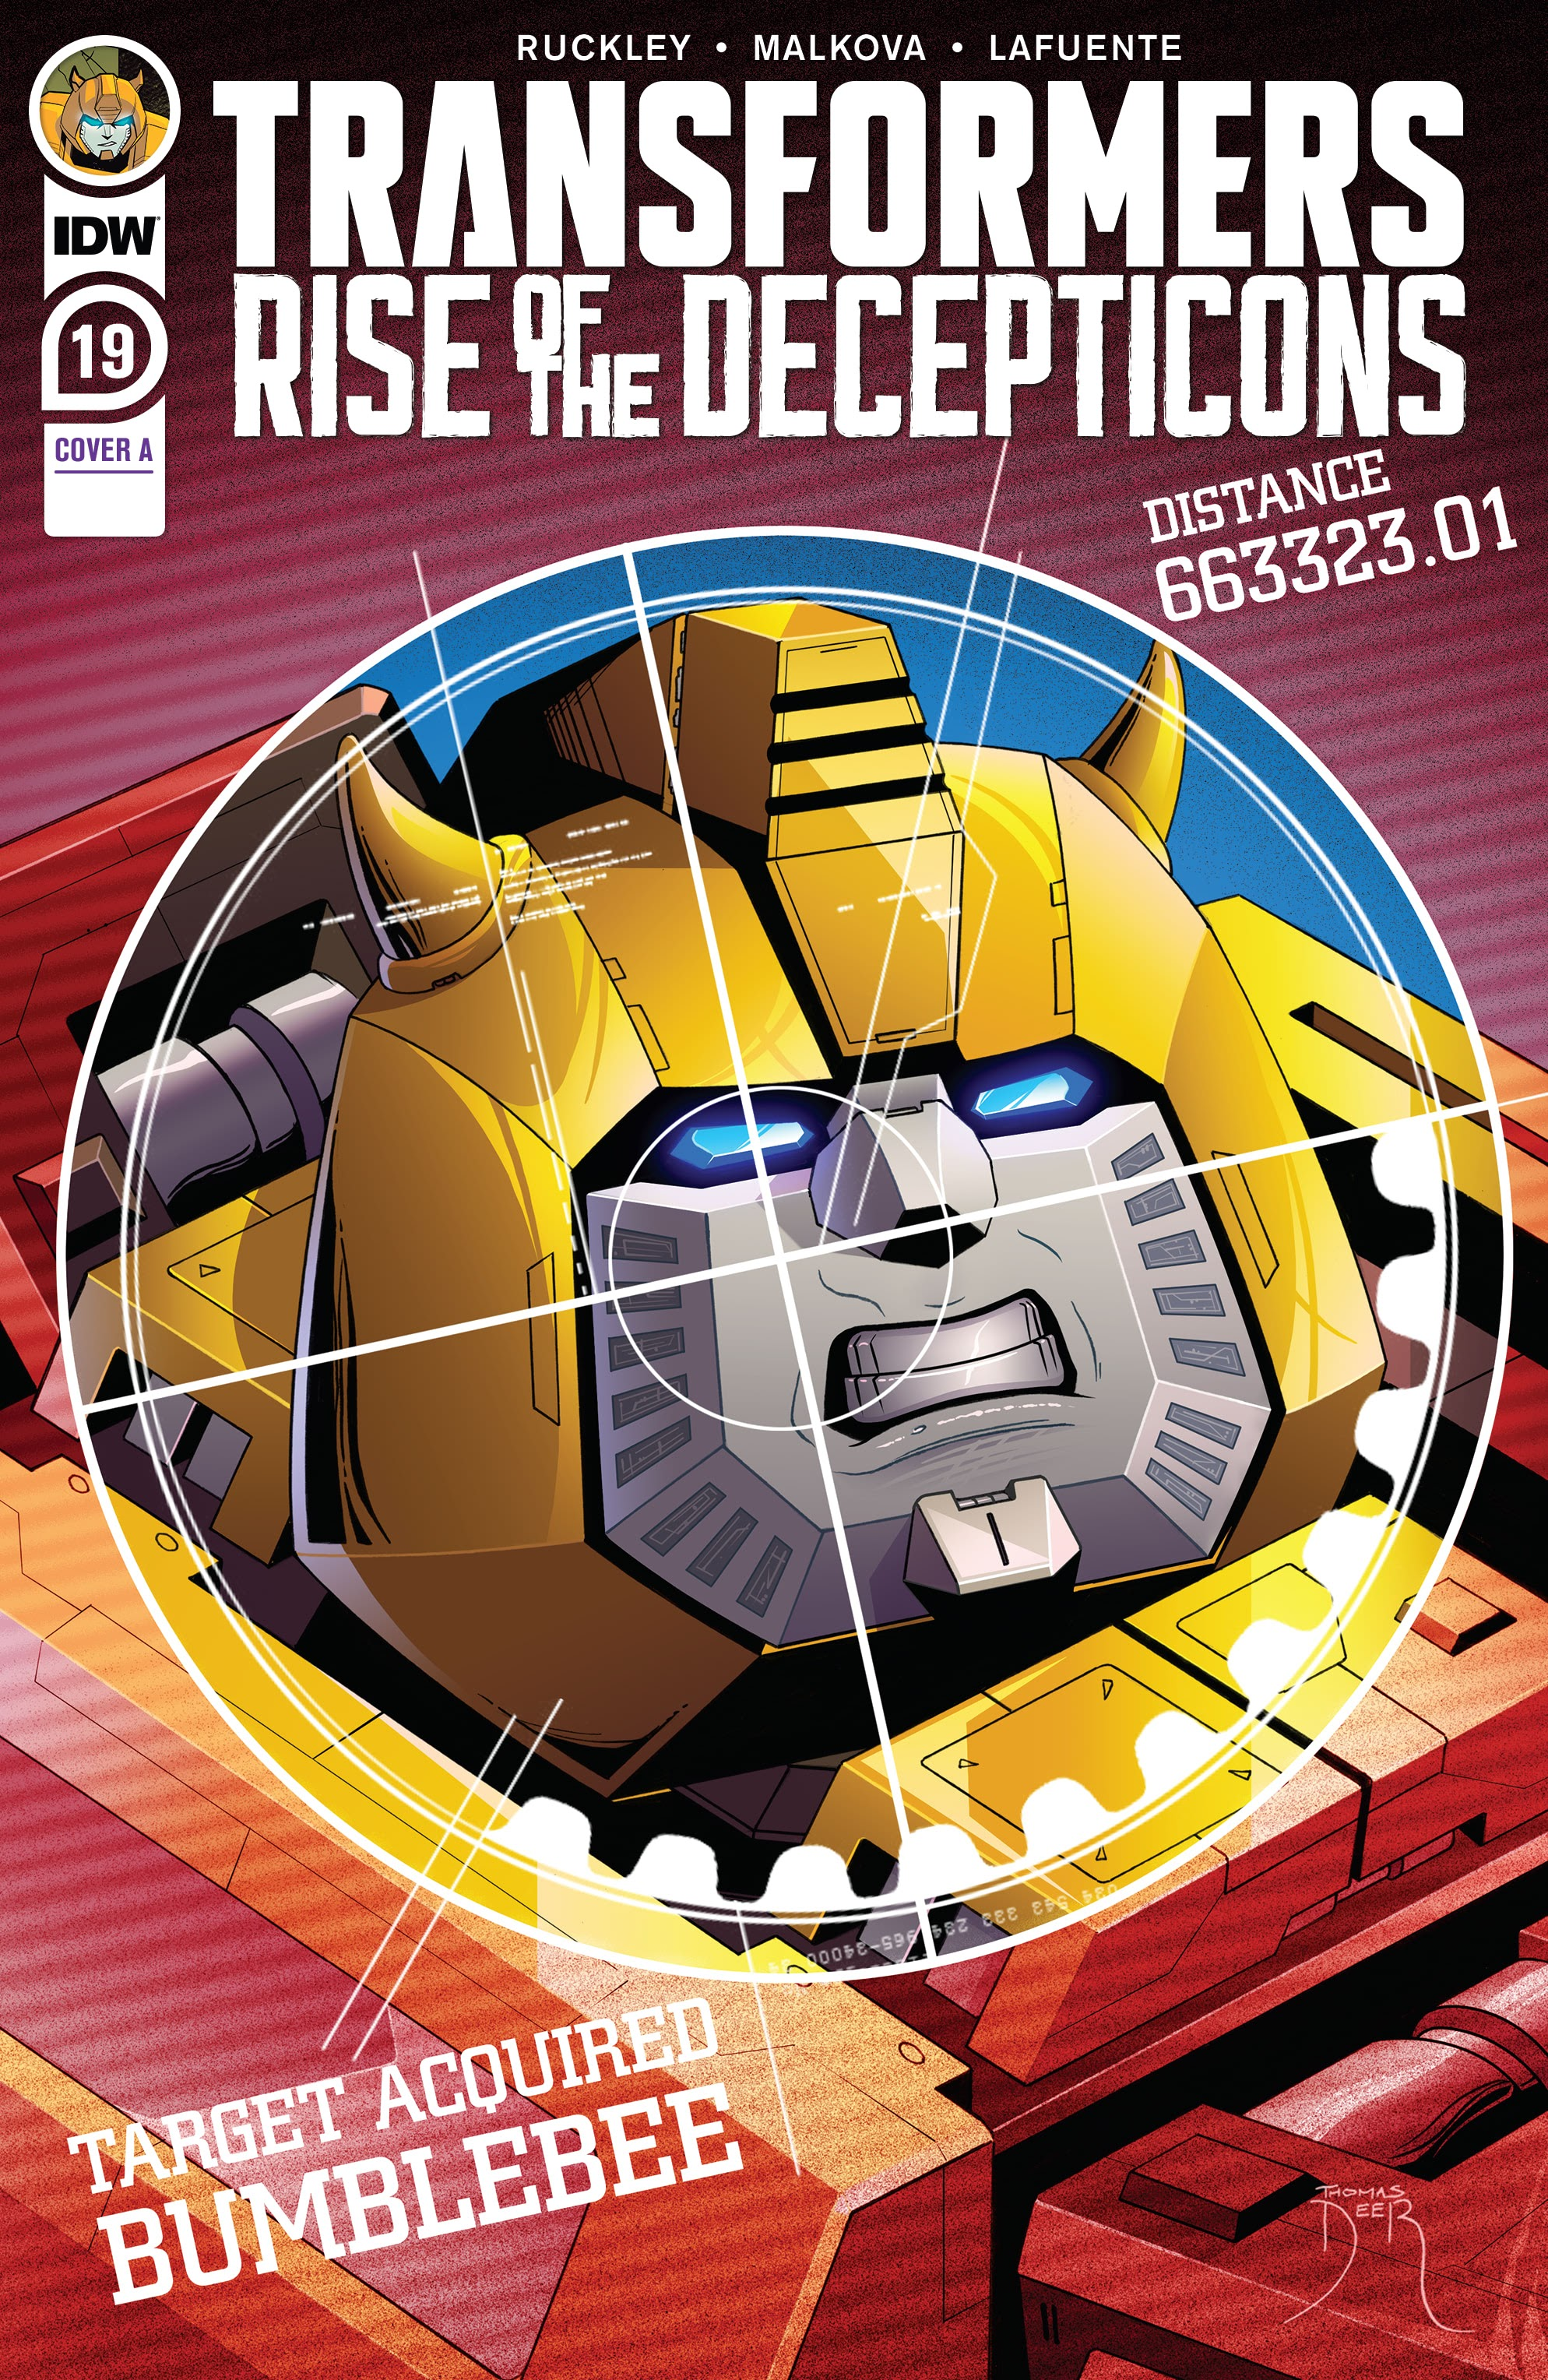 Transformers (2019) 19 Page 1